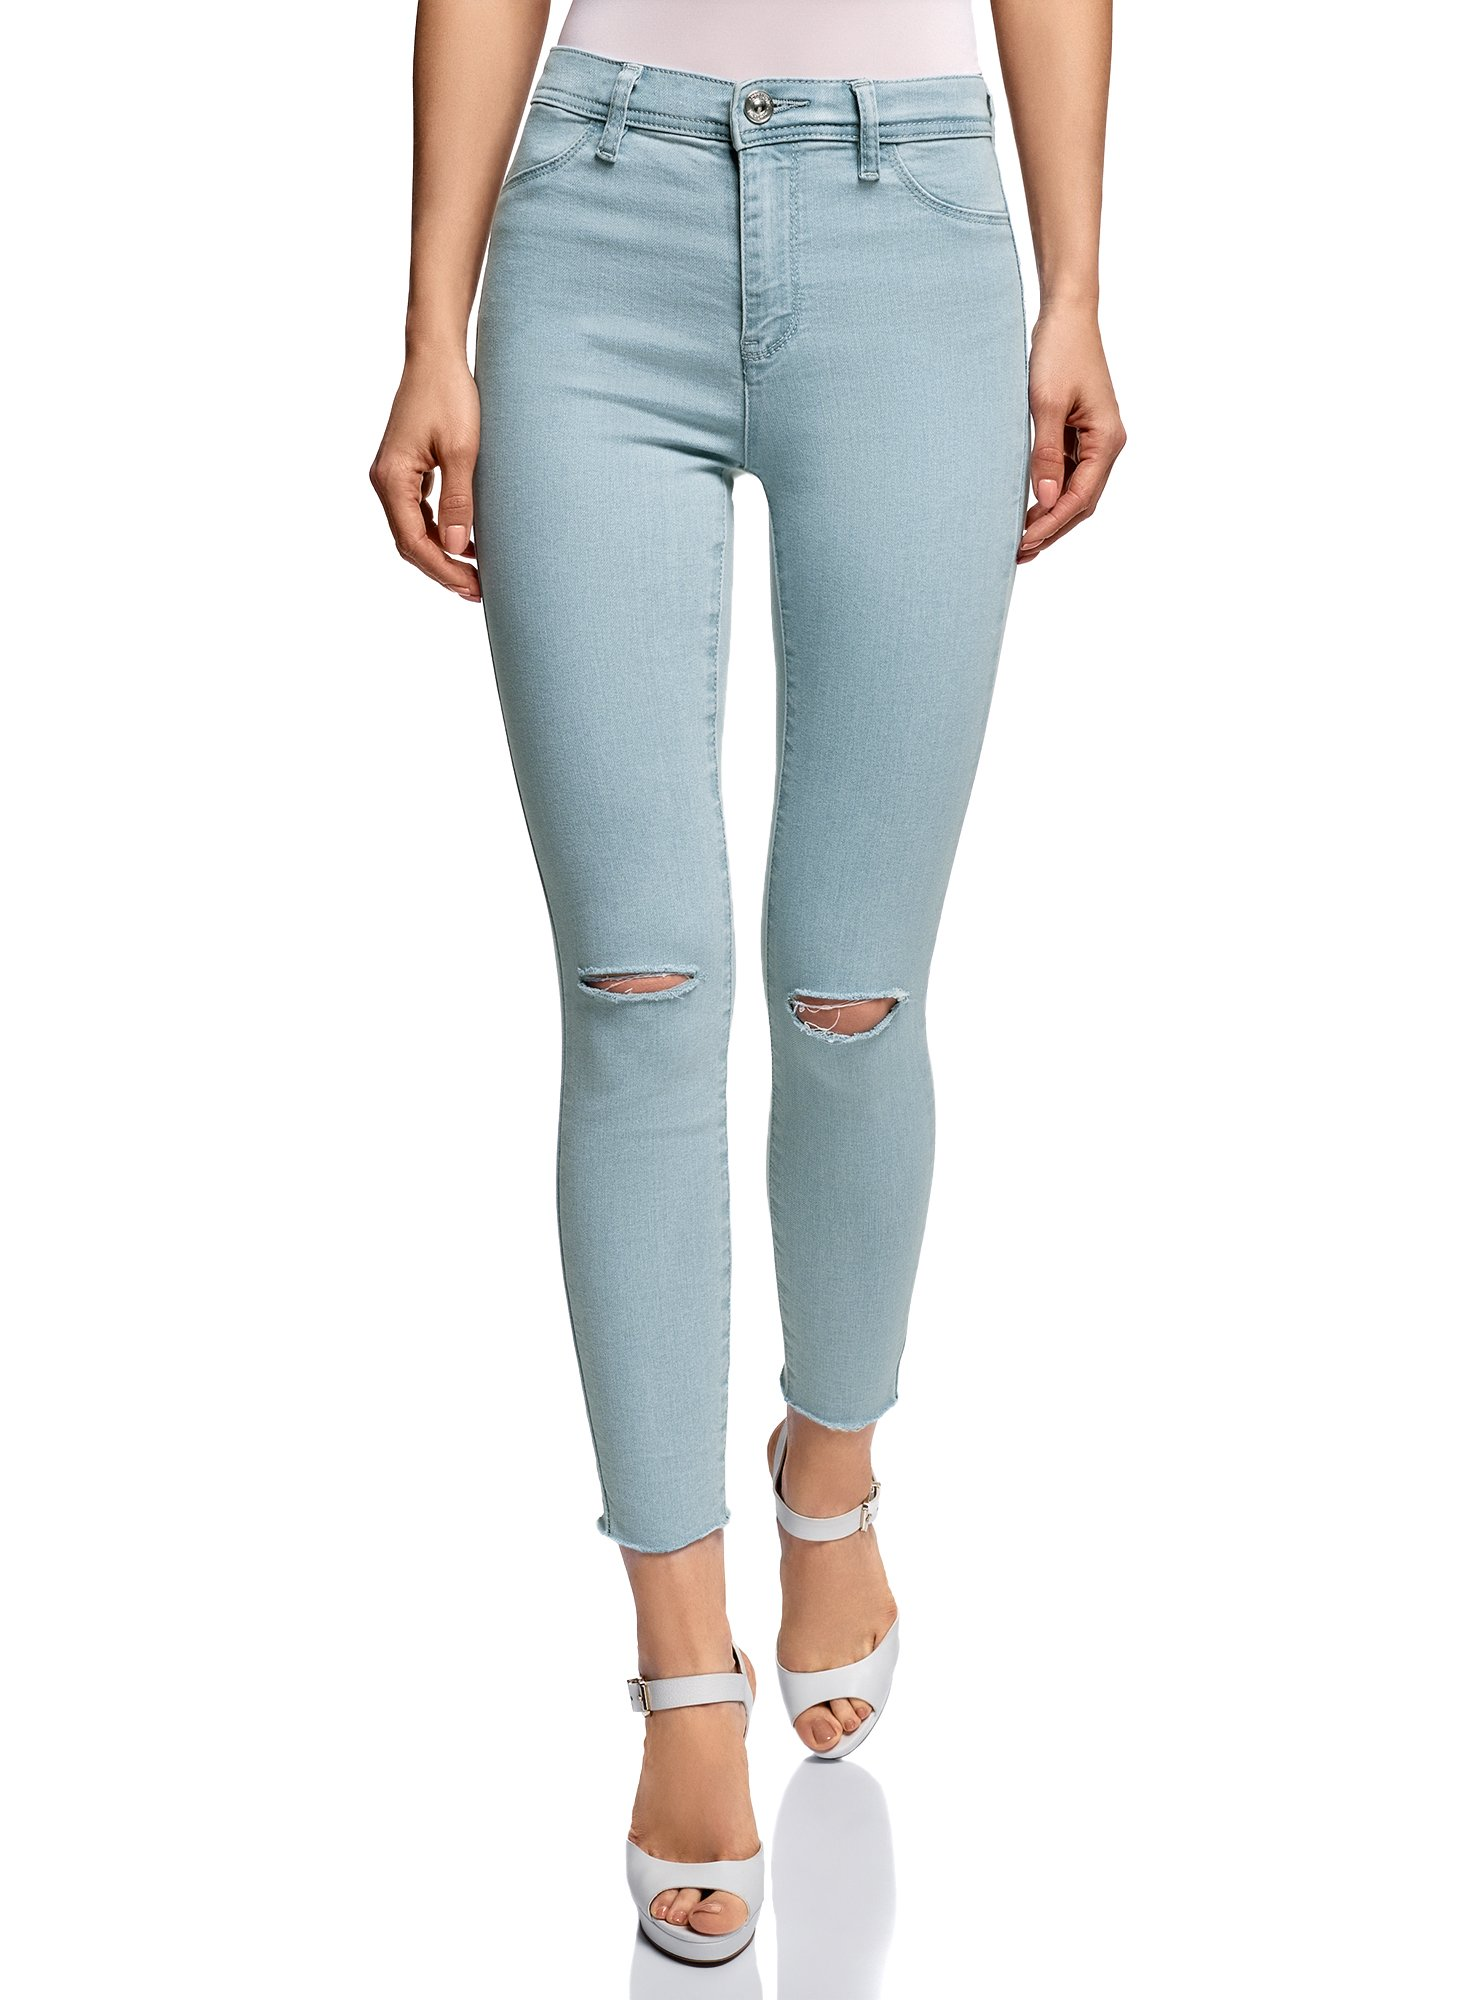 oodji Ultra Women's Skinny Jeans with Ripped Knees, Blue, 27W/30L (US 4/EU 38/S)